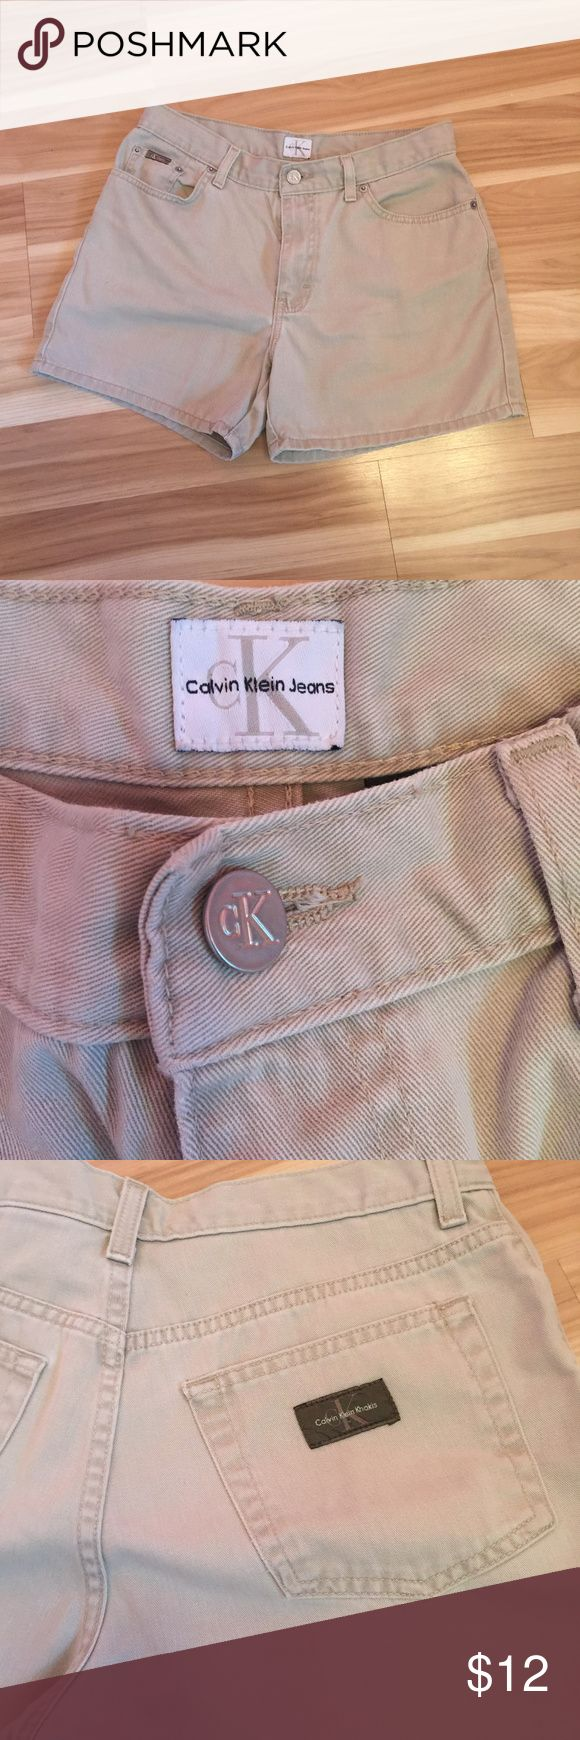 Khaki Calvin Klein Shorts Khaki Calvin Klein Shorts. No Stains / No damage. 100% cotton  No TRADES/ Reasonable Offers Lowball Offers will be declined Calvin Klein Jeans Shorts